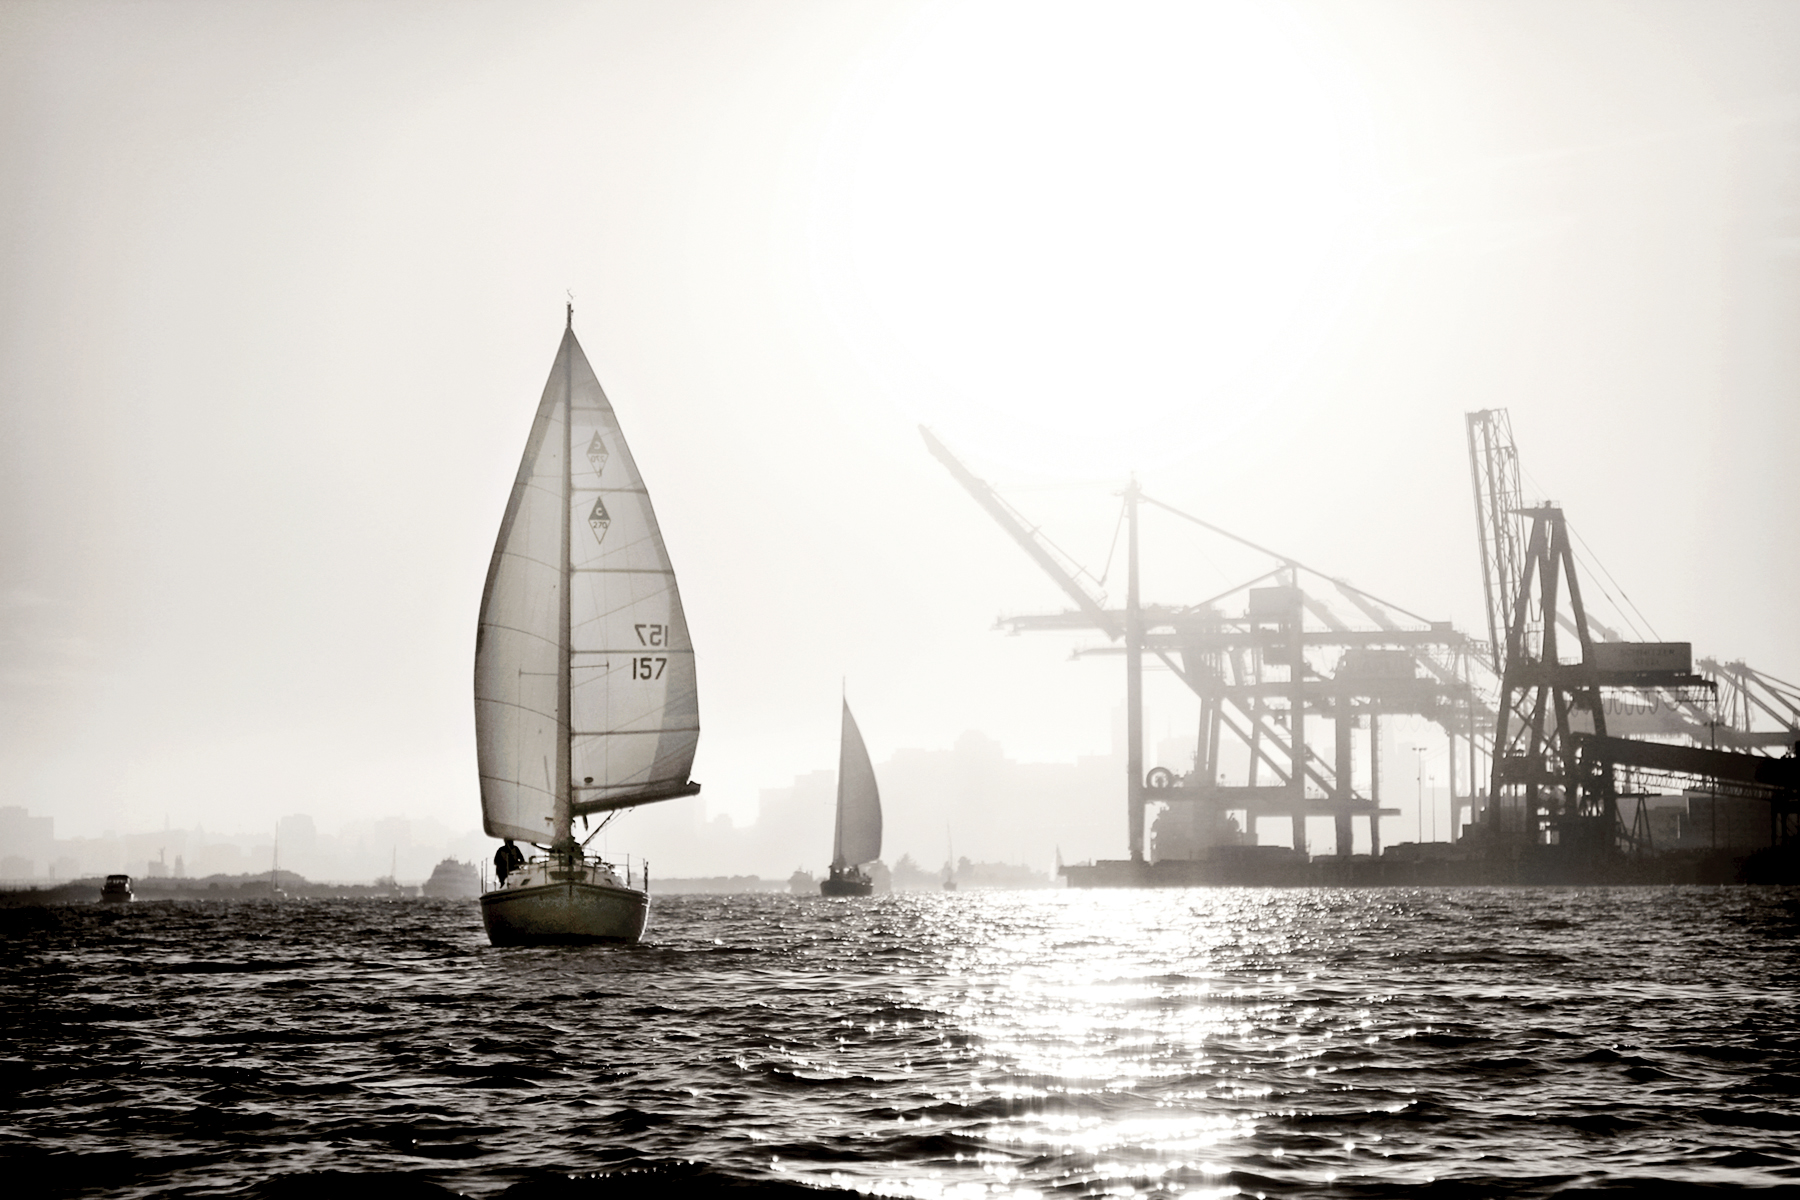 Oakland Harbor, 2012